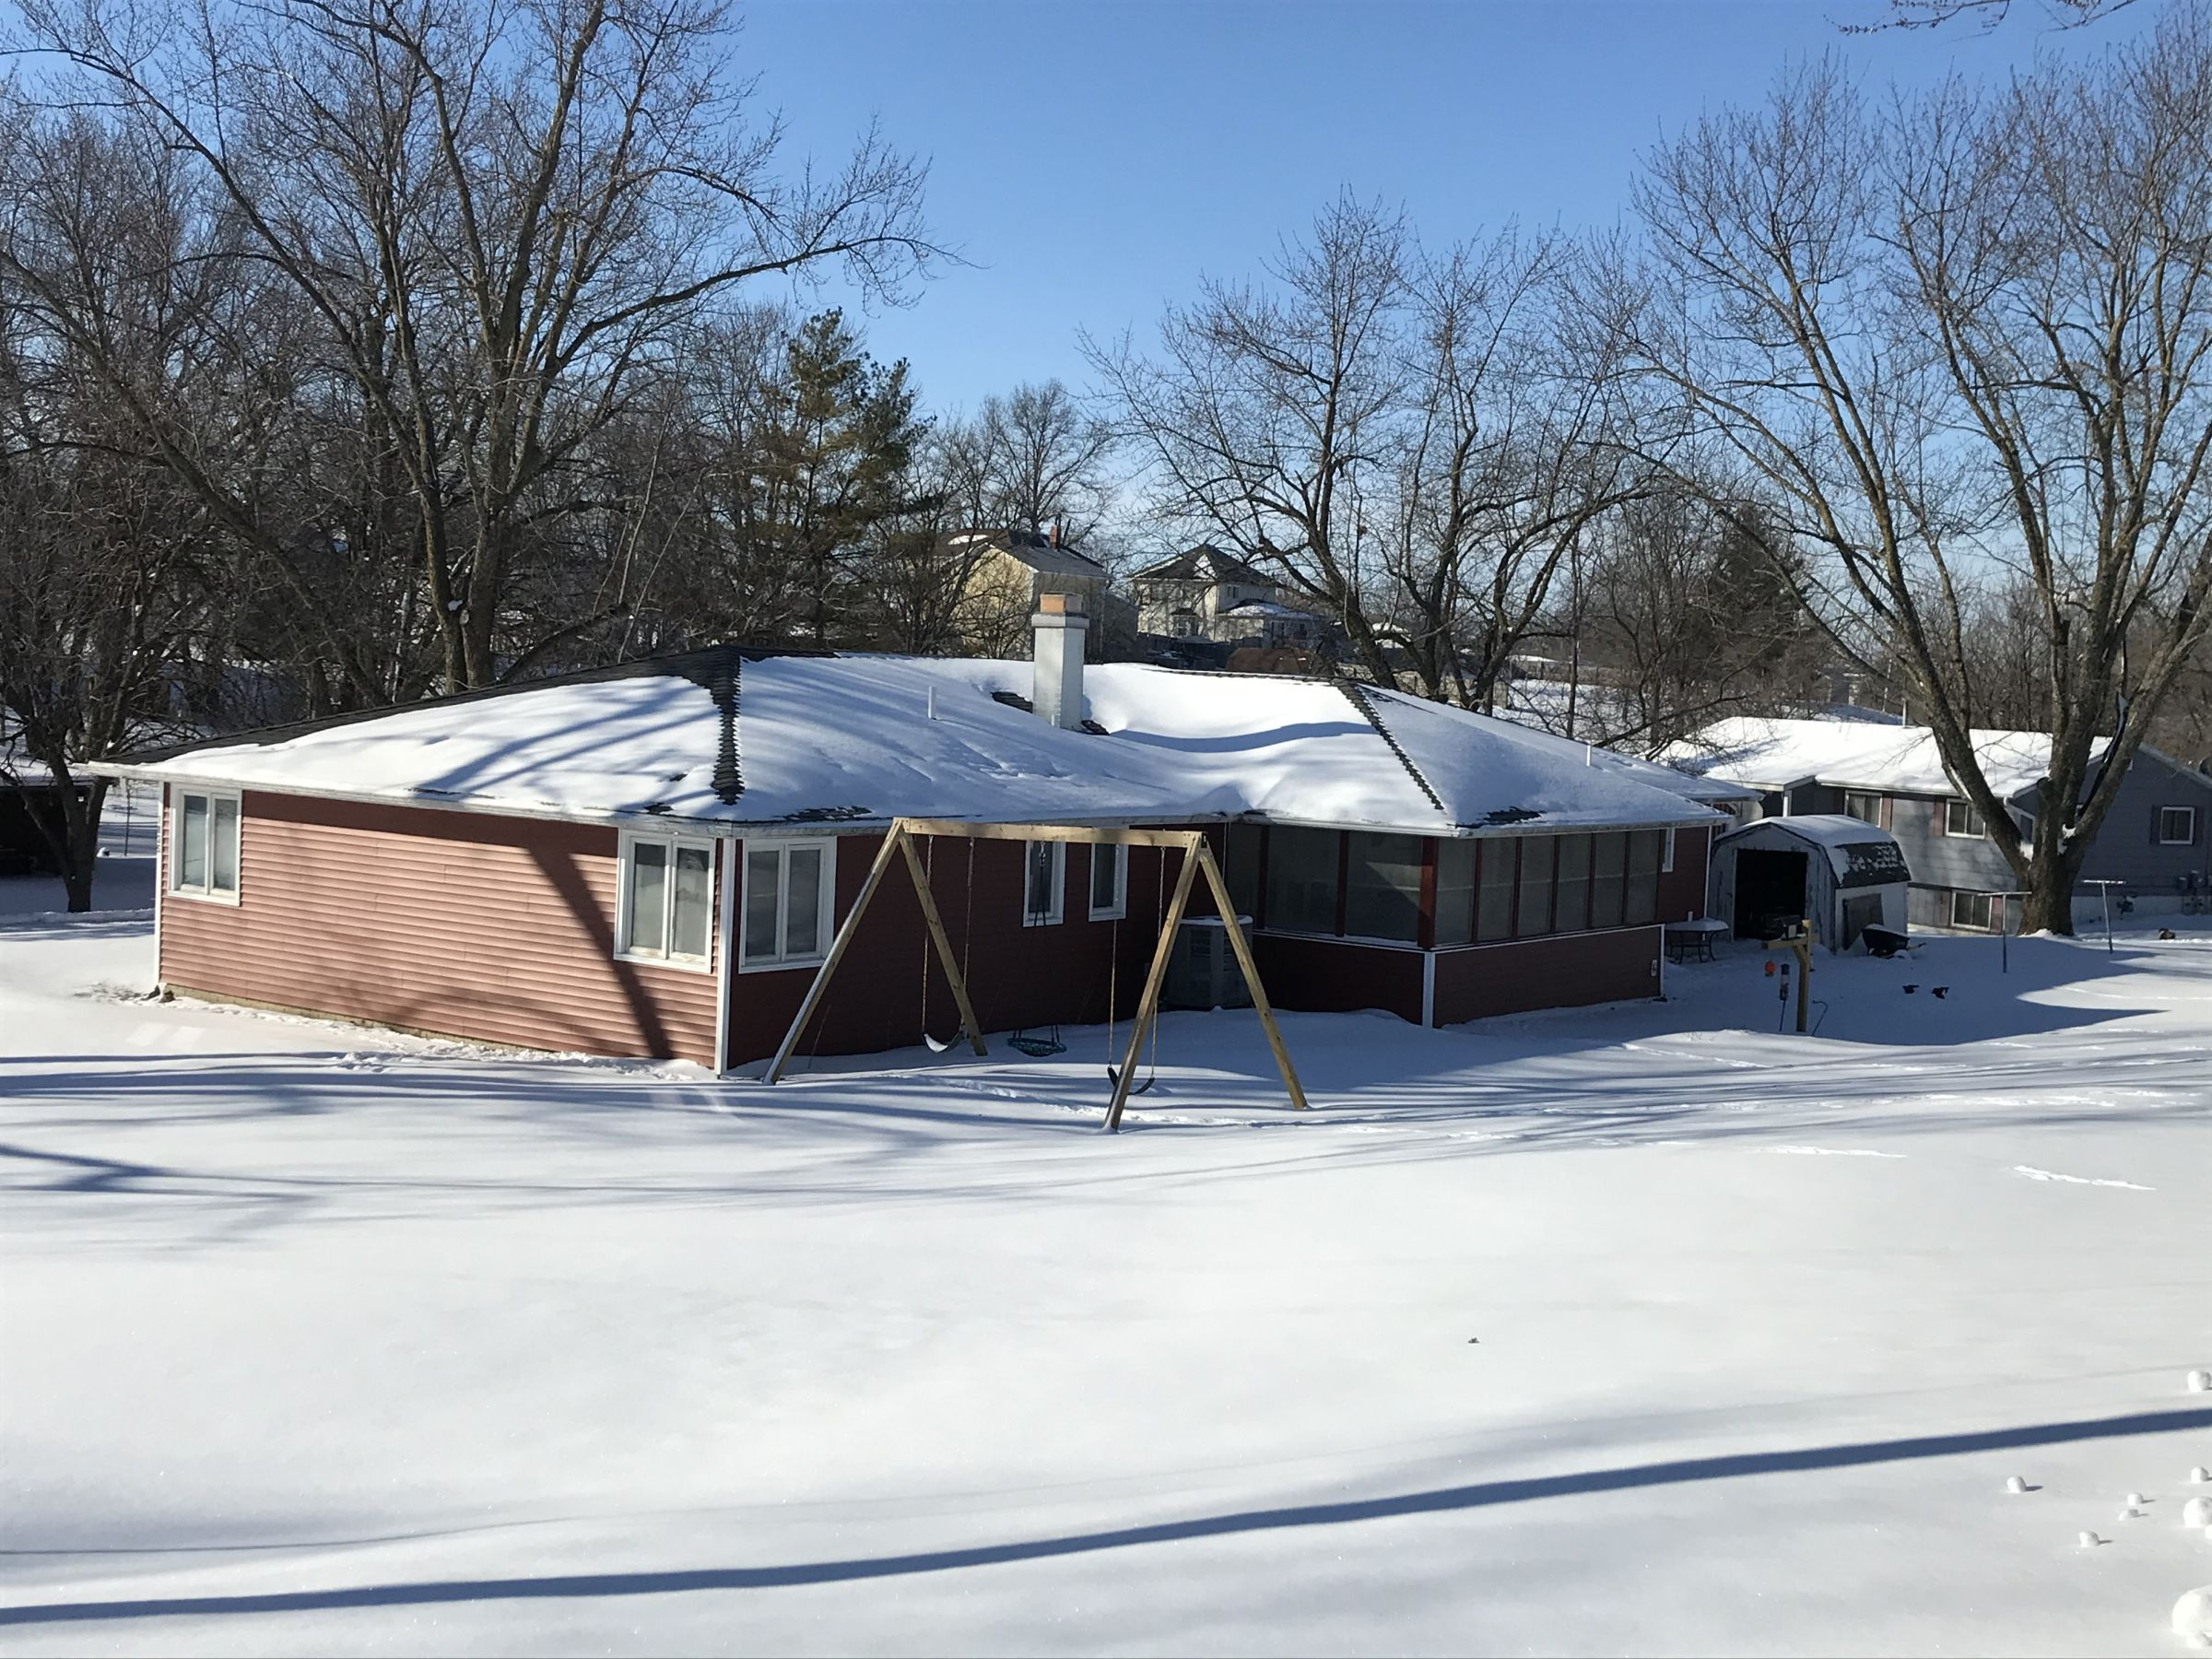 residential-lucas-county-iowa-0-acres-listing-number-15320-3-2021-02-01-152115.jpg